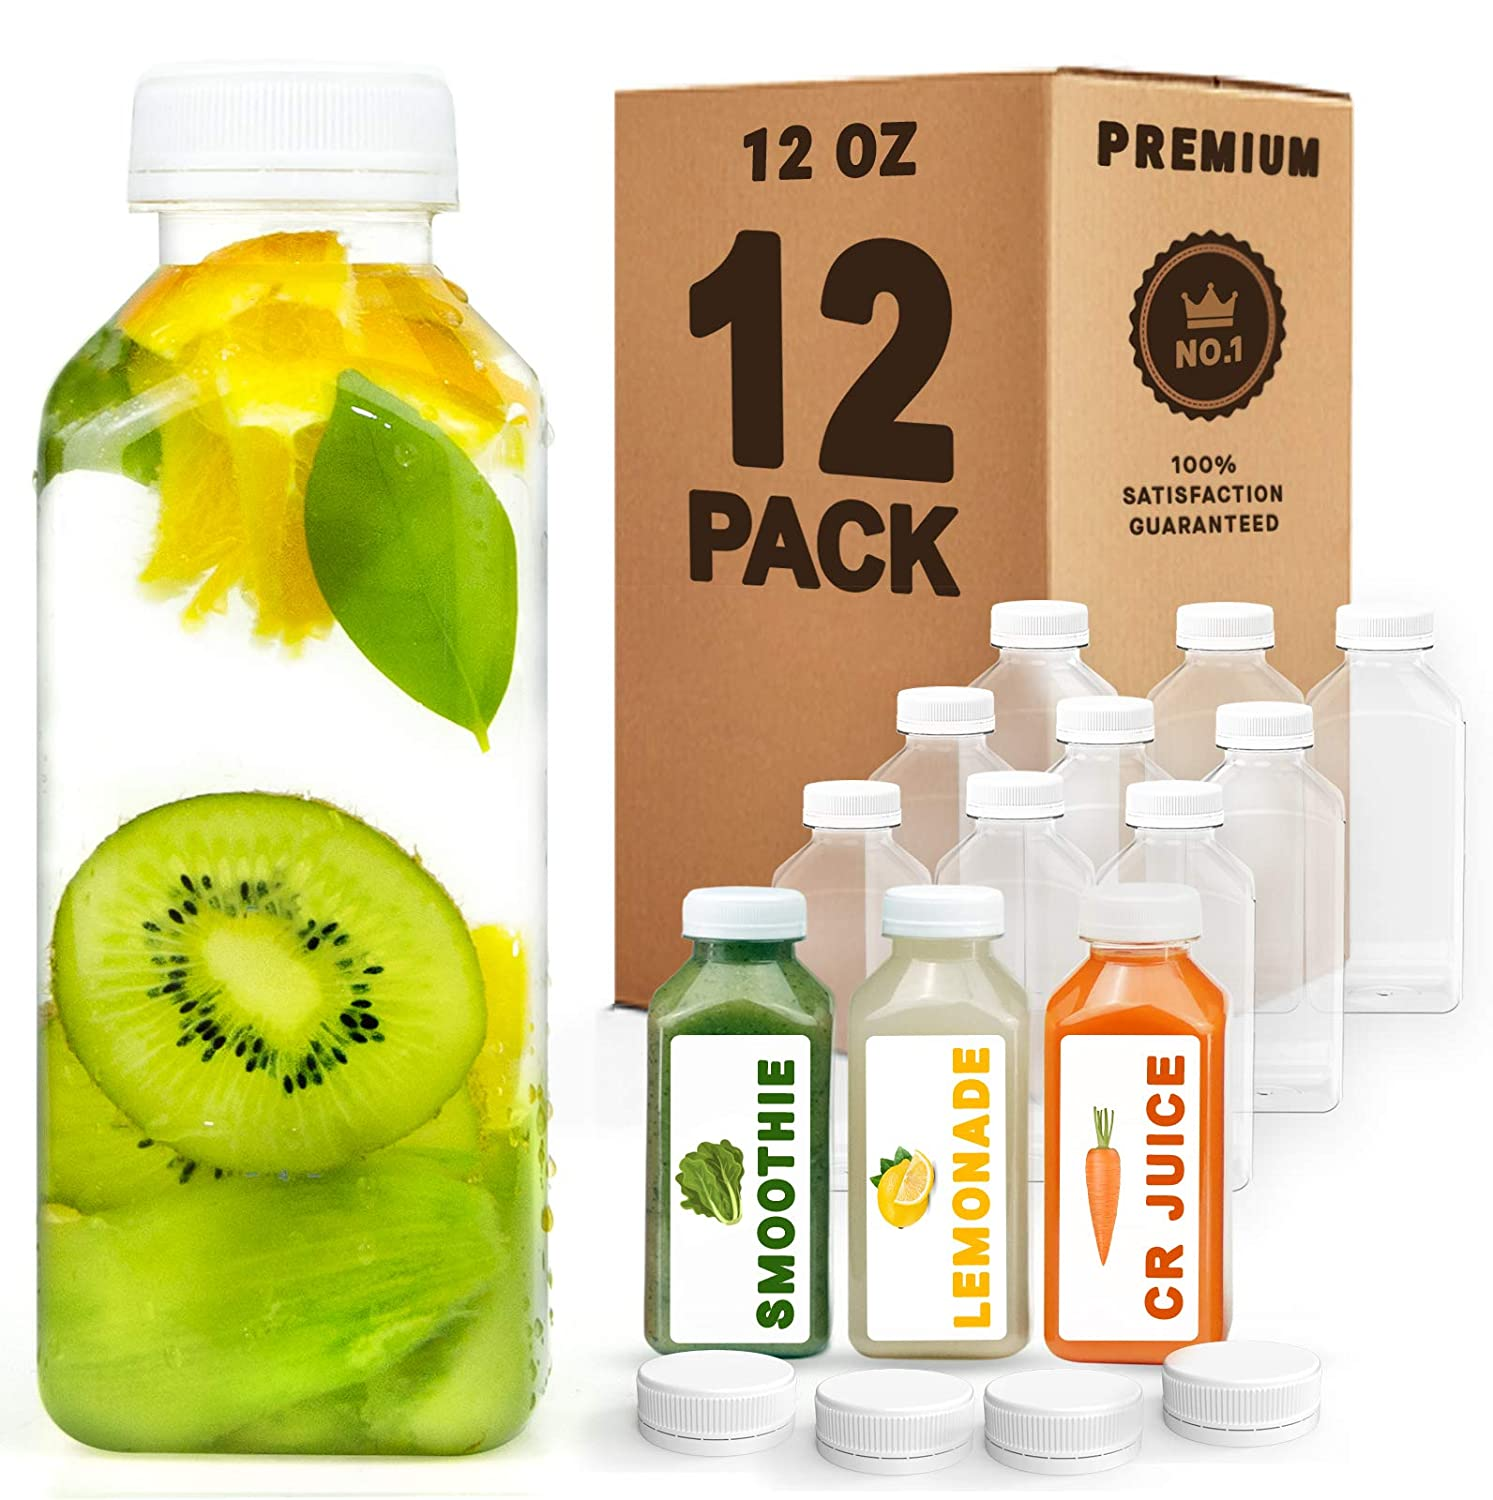 Norcalway 12 oz Plastic Juice Bottles with Caps Lids - Smoothie Bottles, Drink Juice Containers with Lids, Reusable Juice Bottles for Juicing, 12 Pack